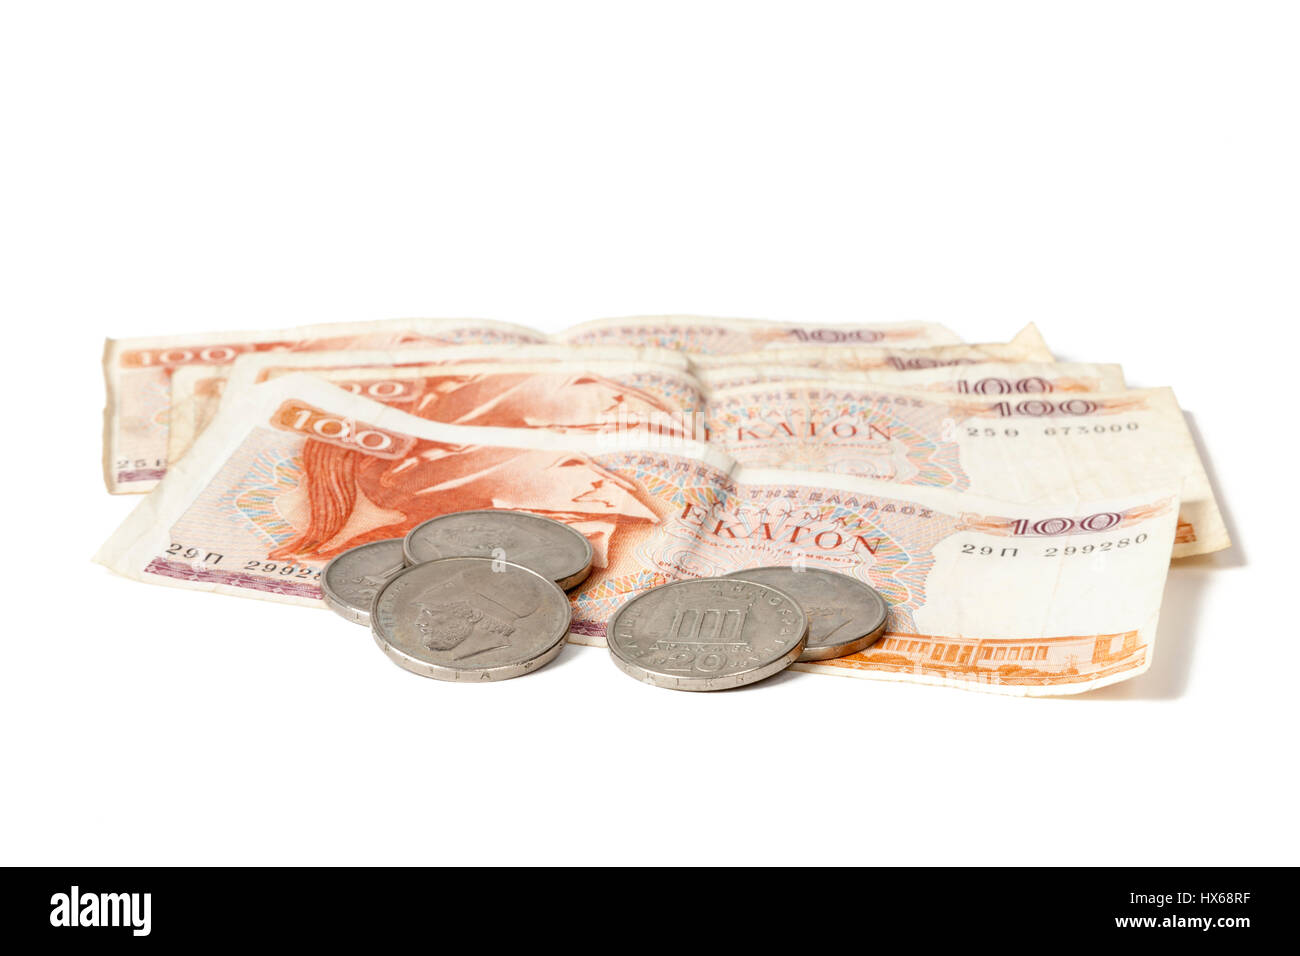 Greek drachma coins and banknotes - Stock Image